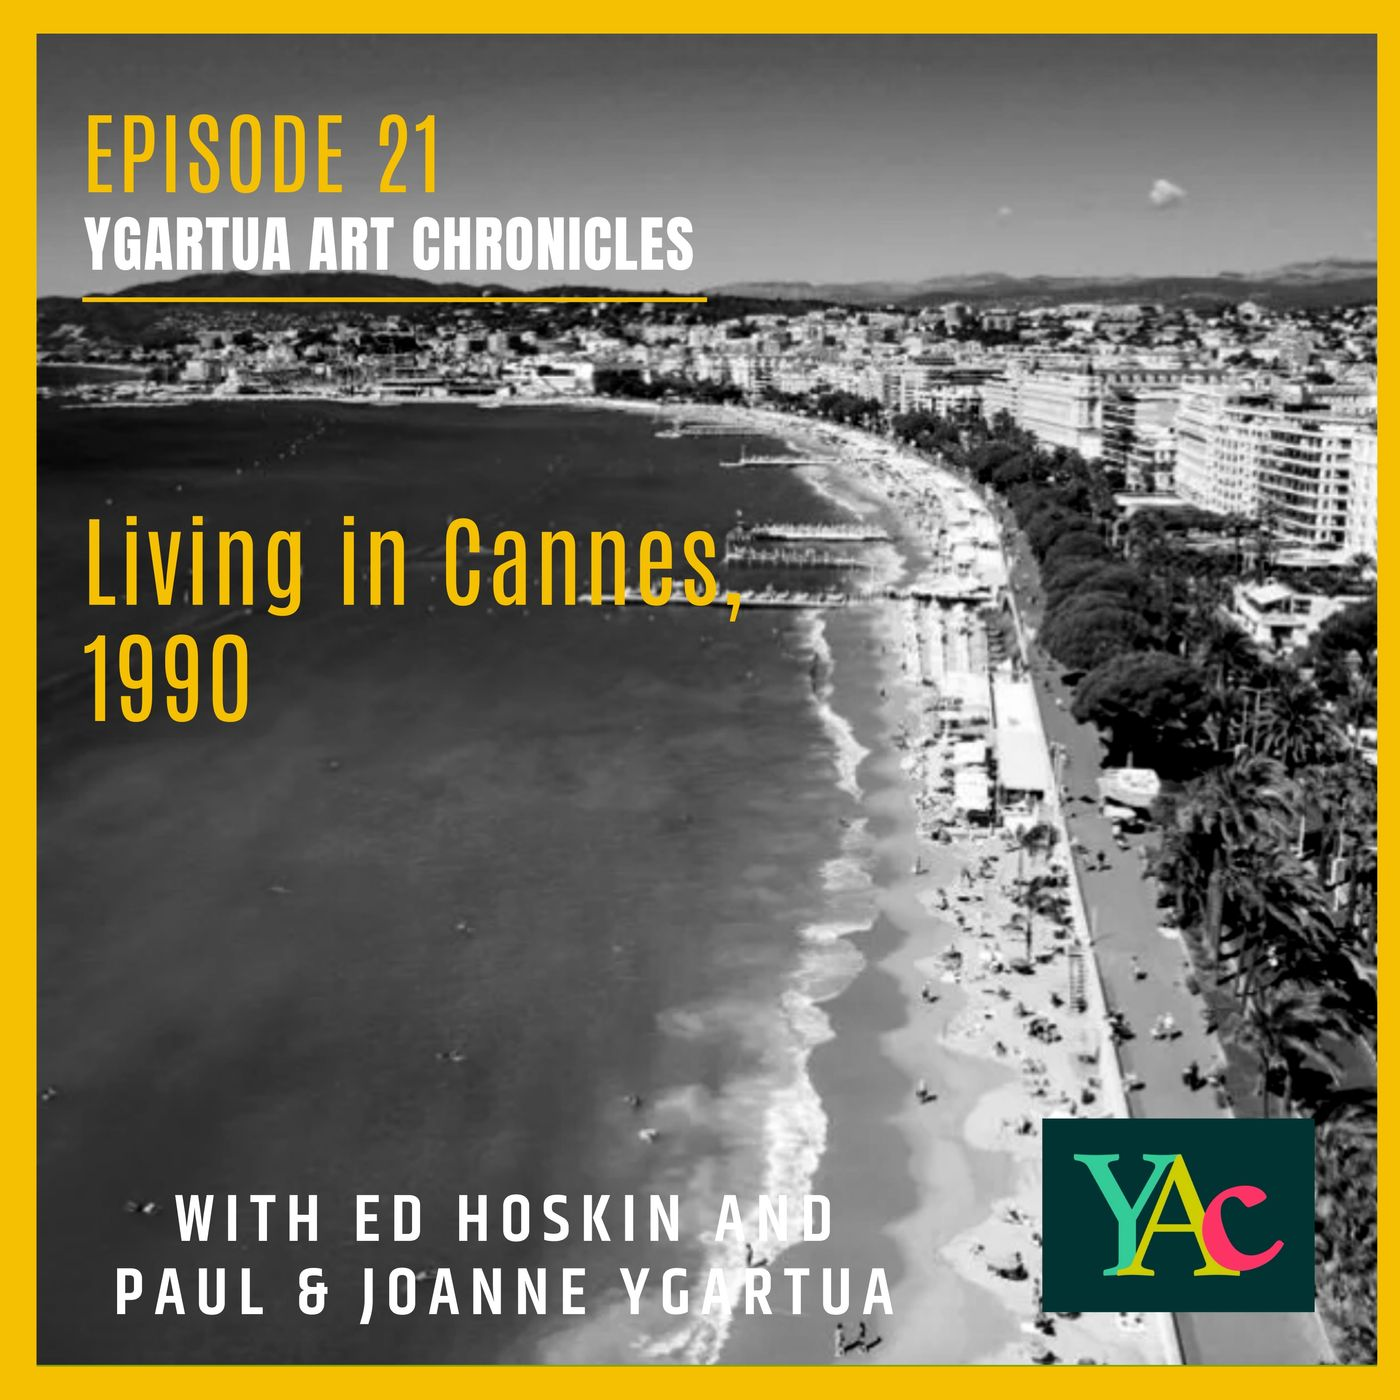 Episode 21: Living in Cannes, 1990